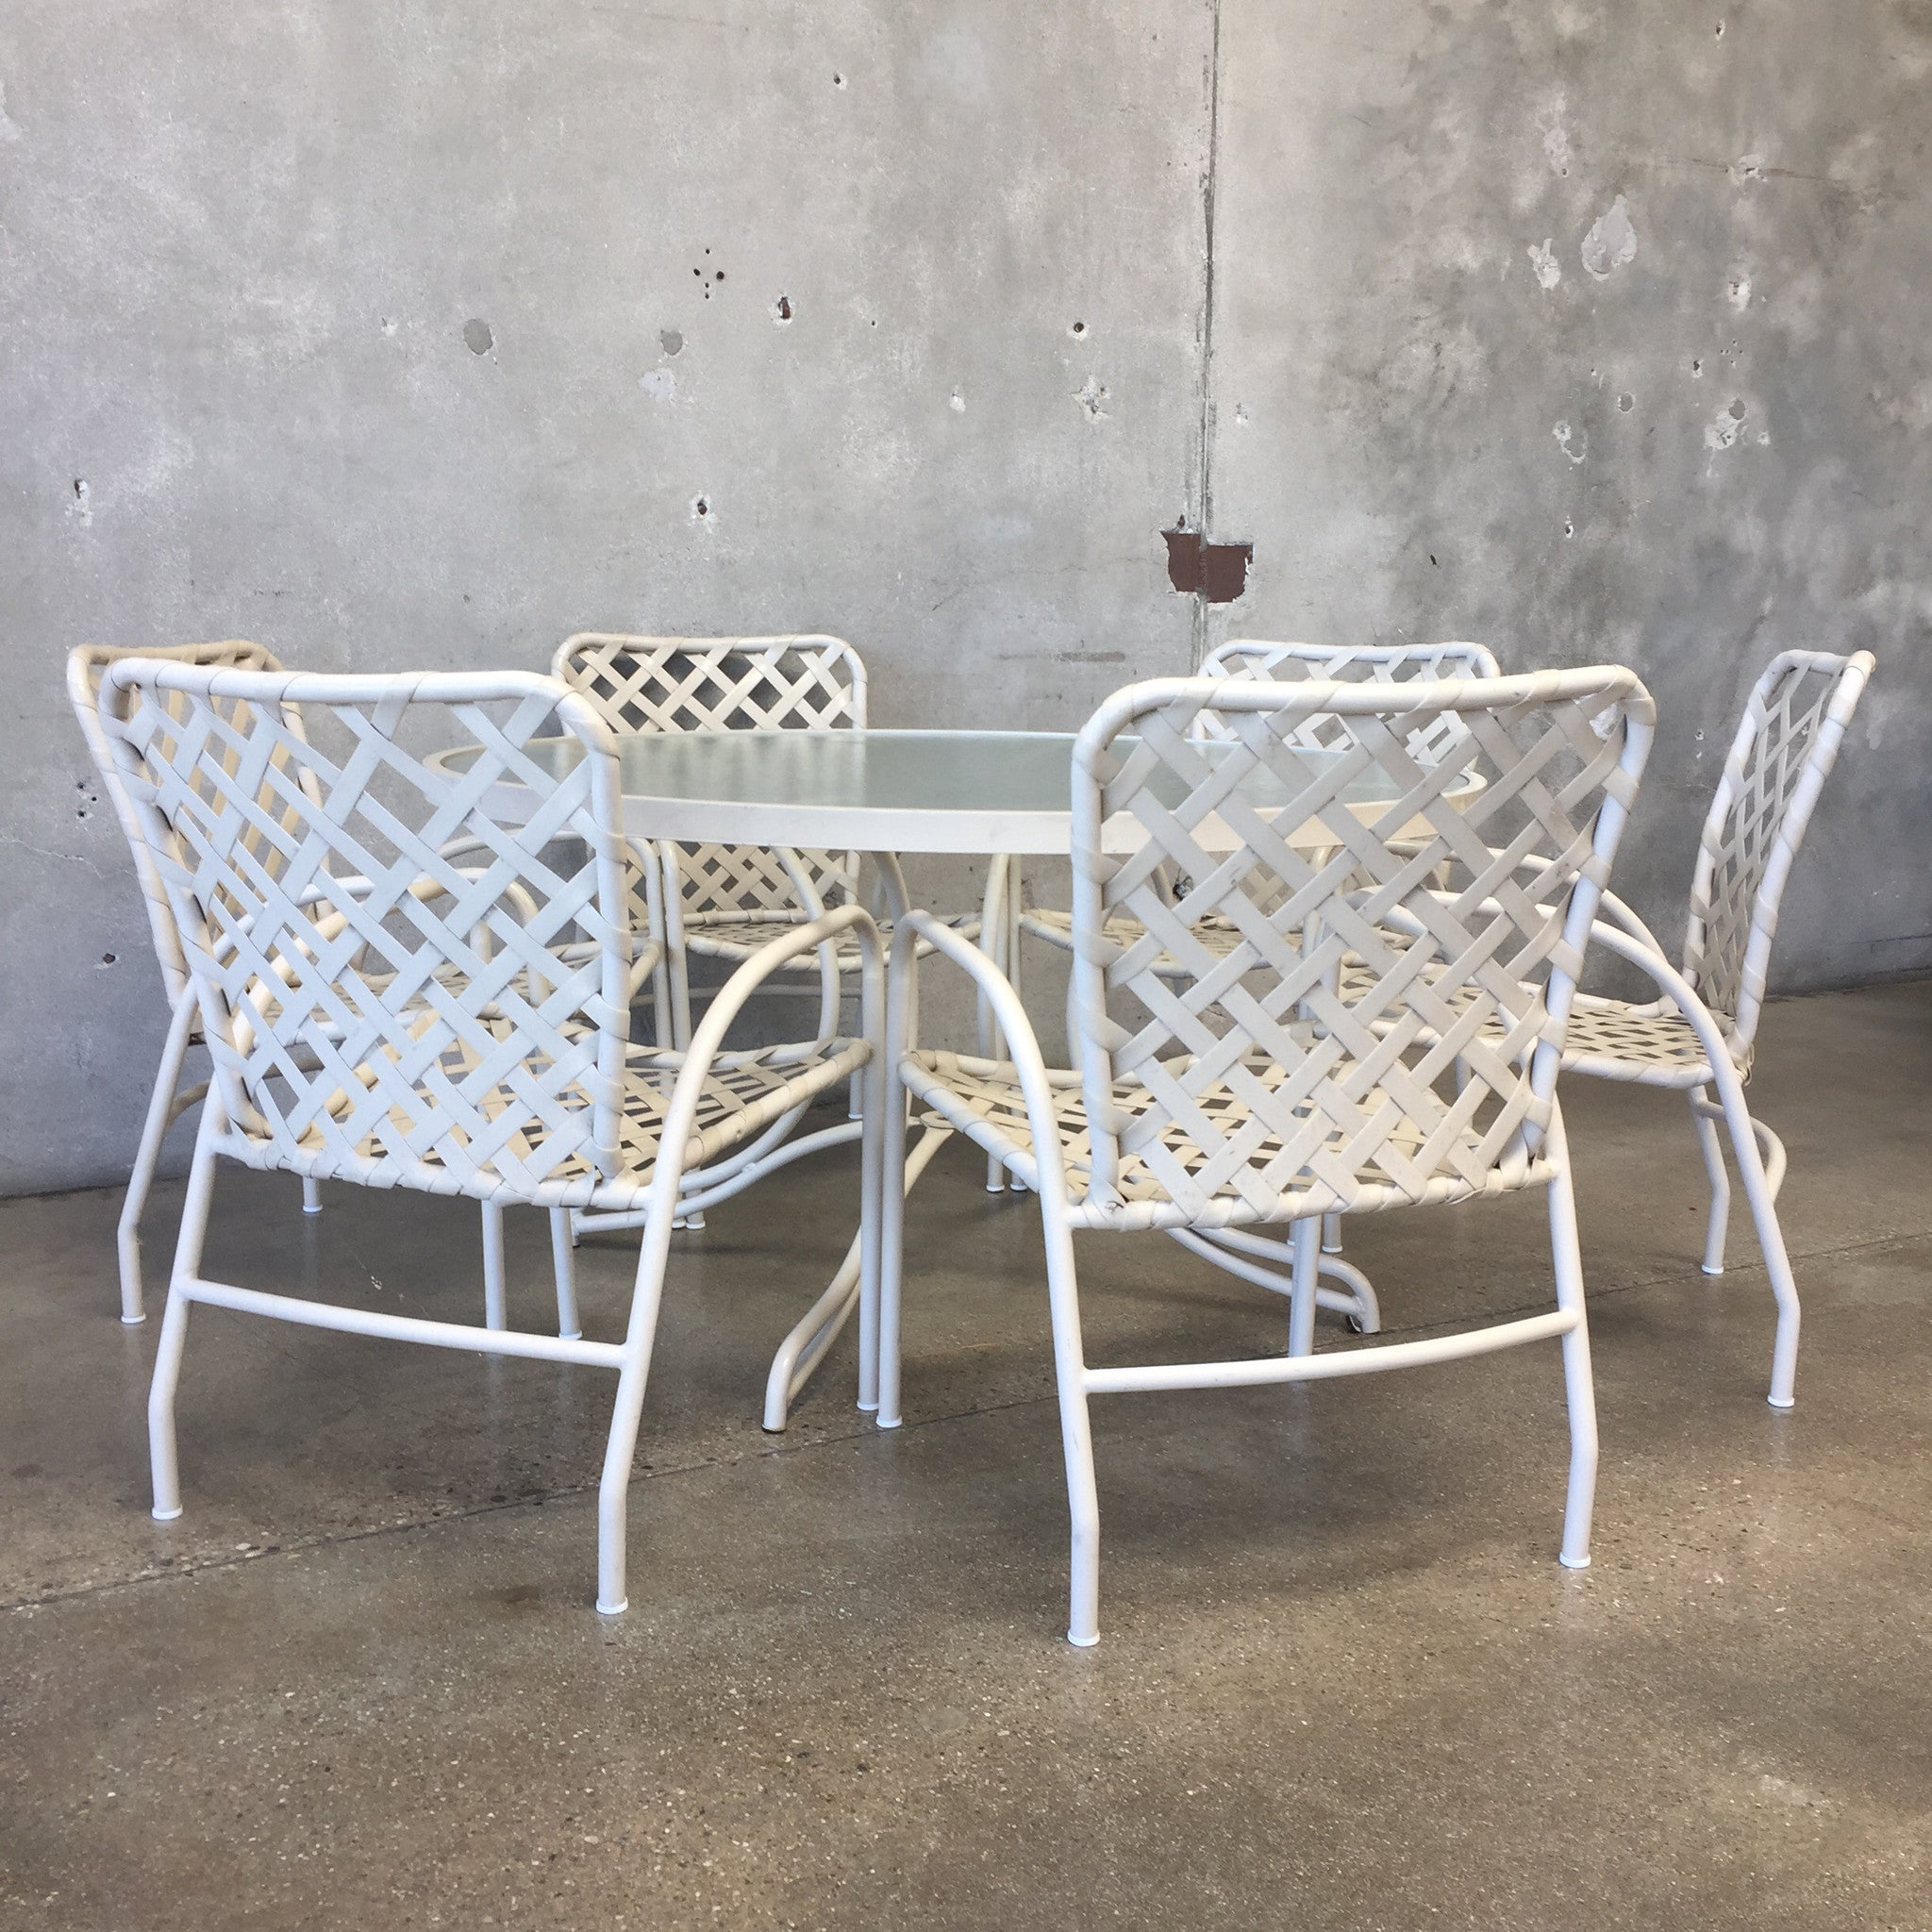 ... Vintage Brown Jordan Patio Dining Set ... Part 9